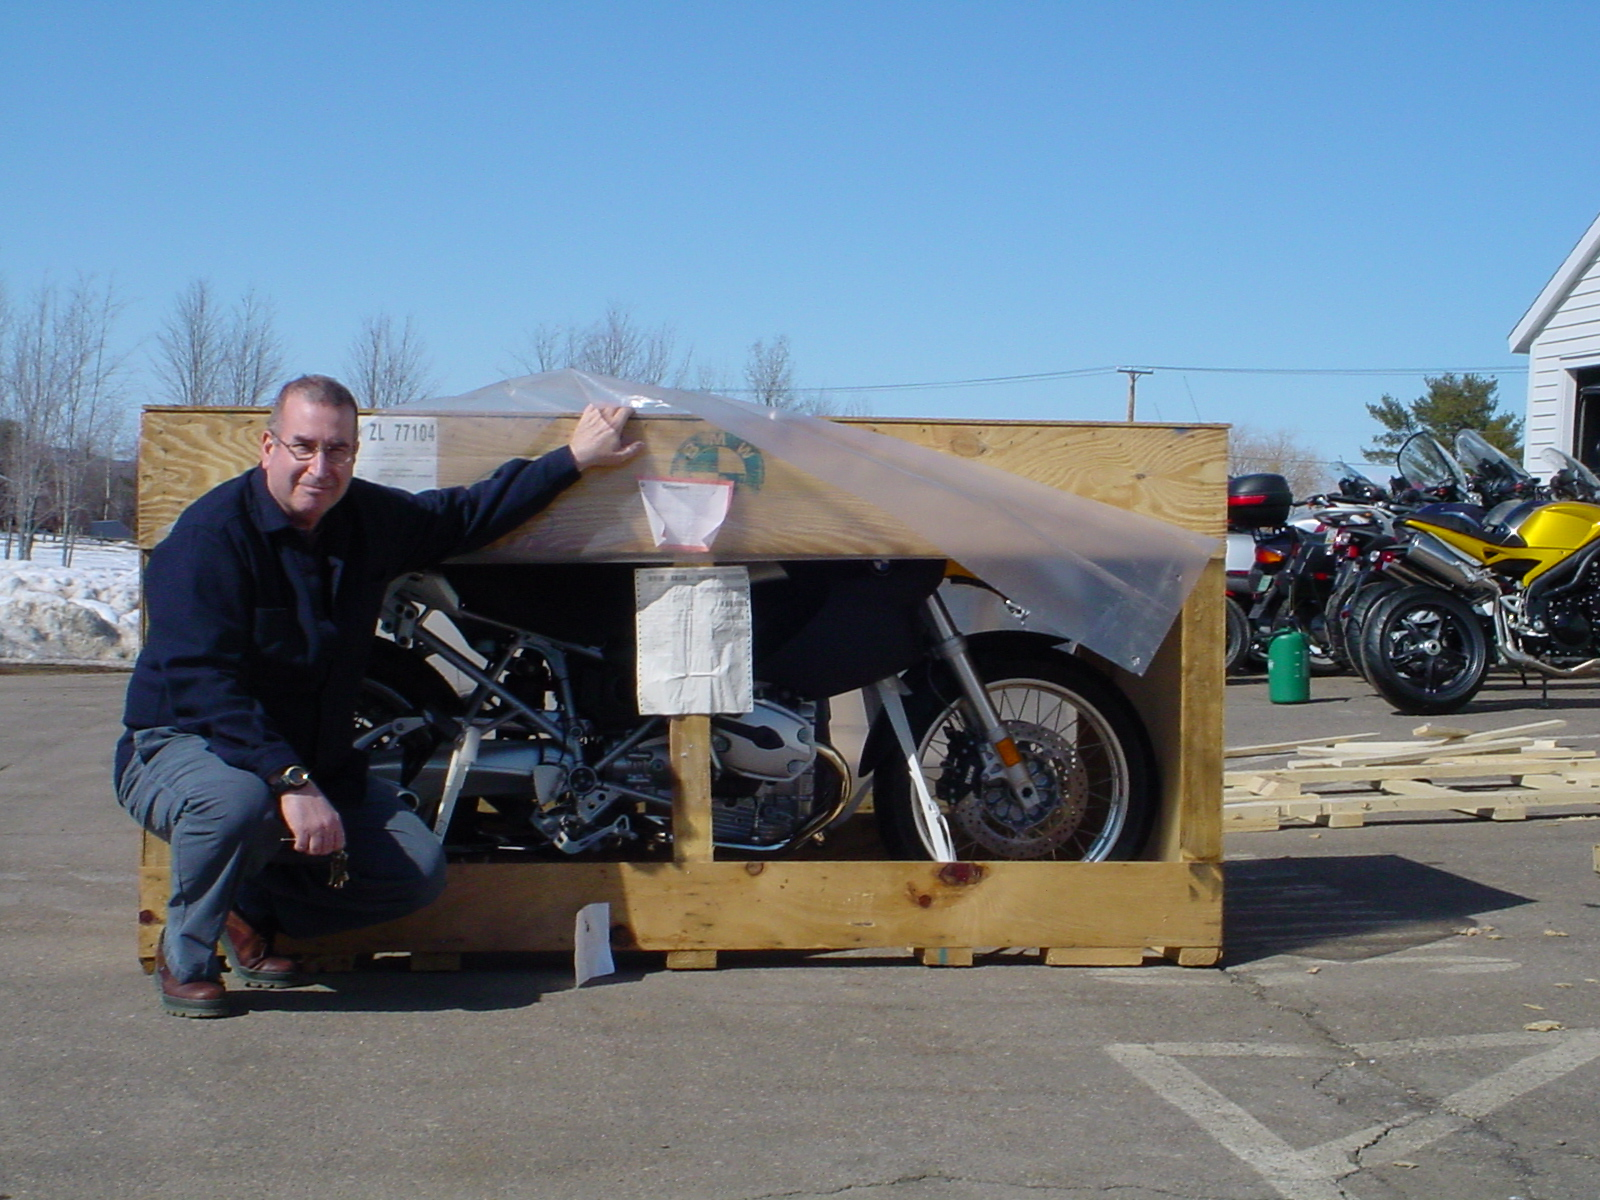 2005 BMW R1200 GS crated (inferior YELLOW) version